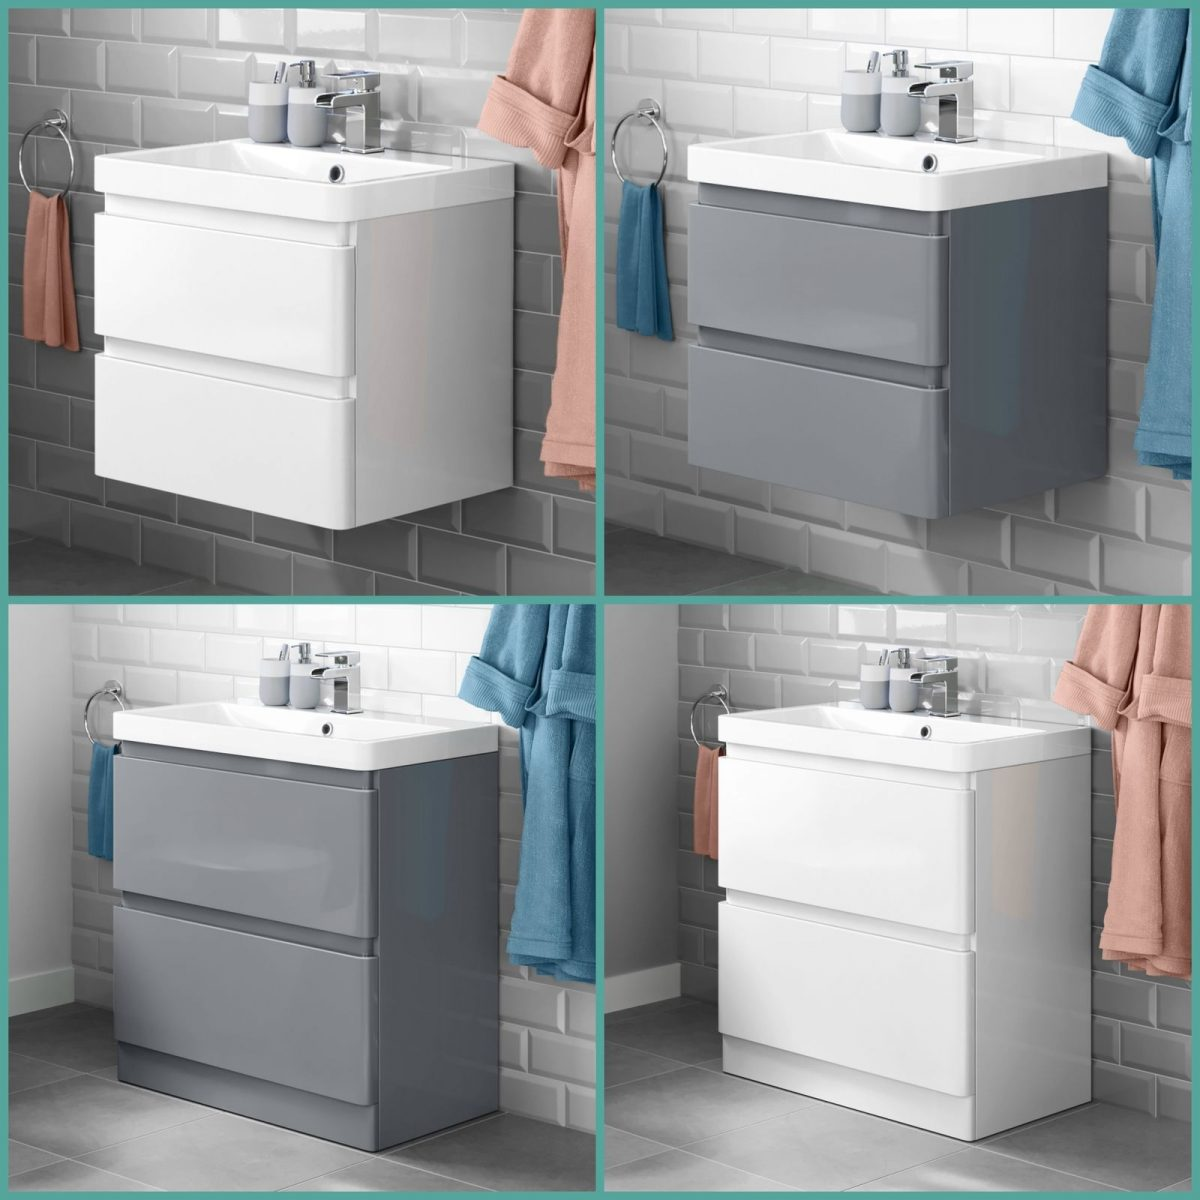 New Round Bathroom Furniture with high gloss painting